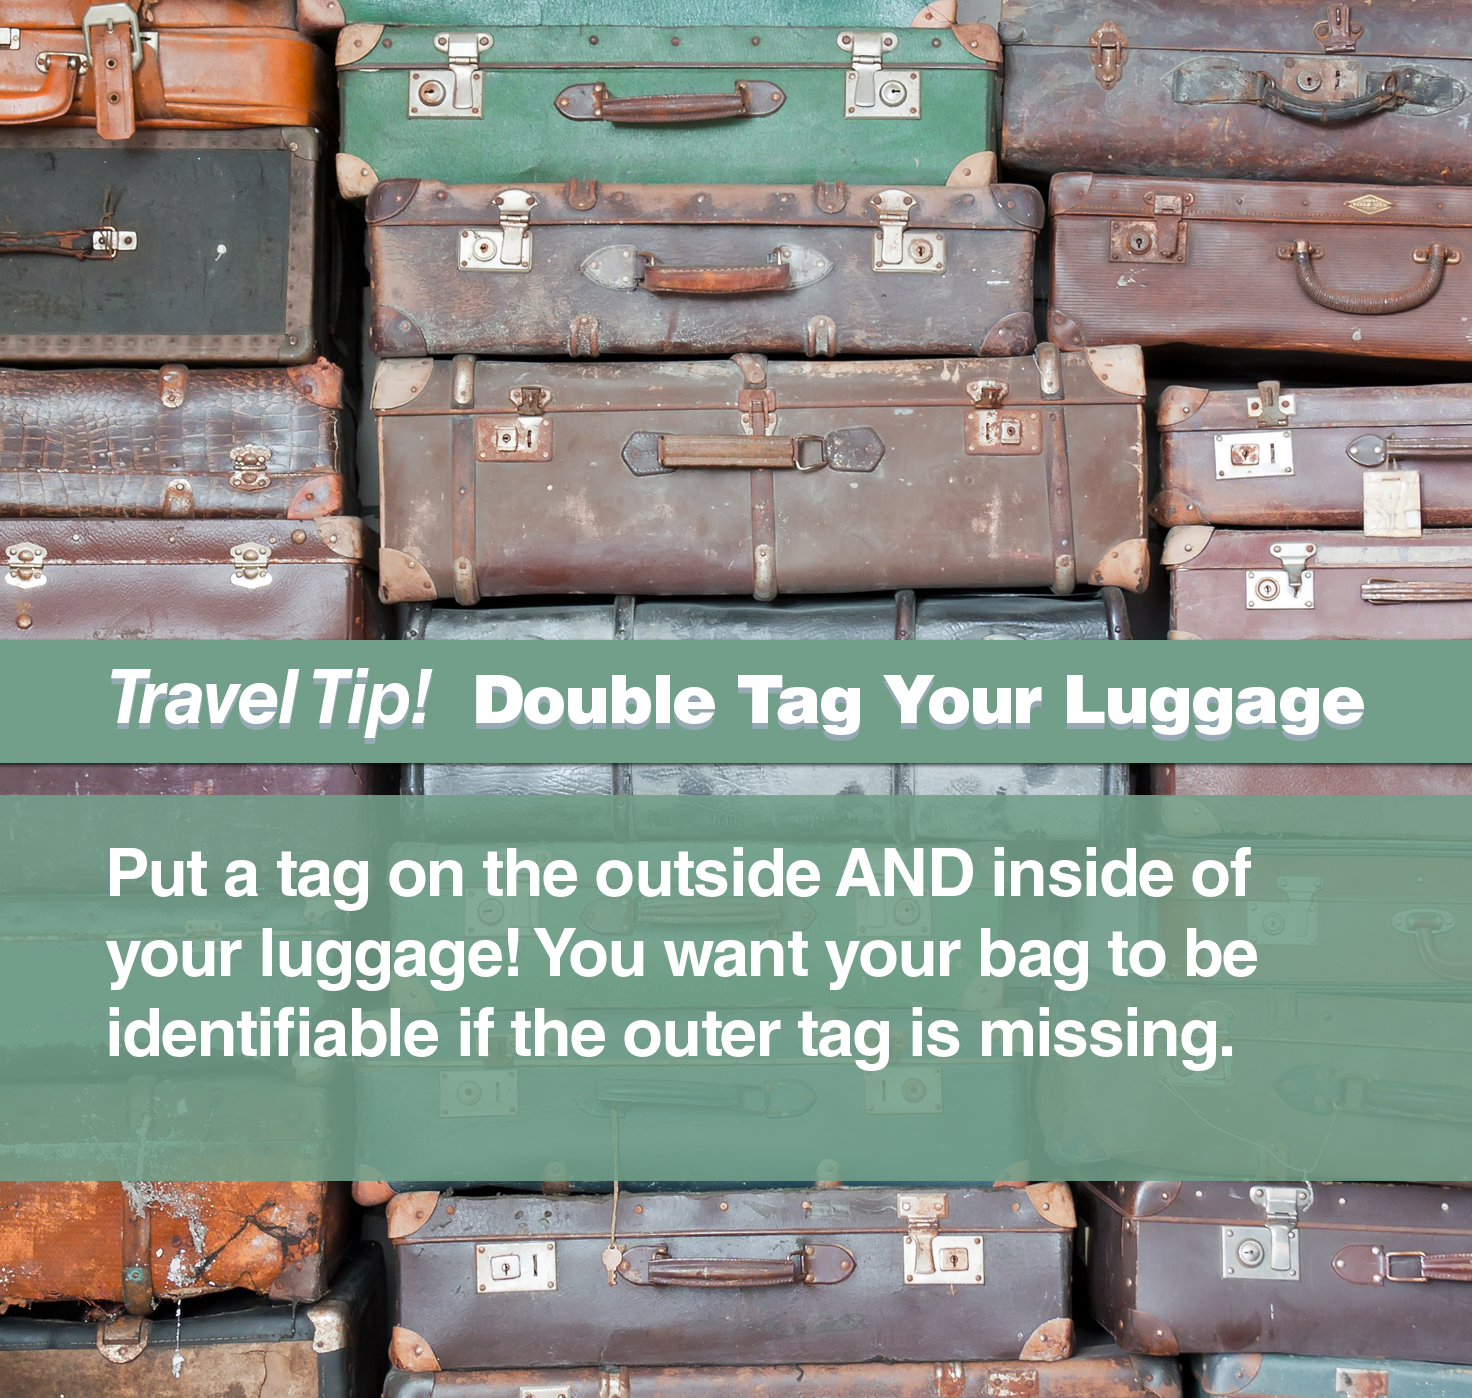 Think ahead and put your name inside of your luggage too! #travel #tip